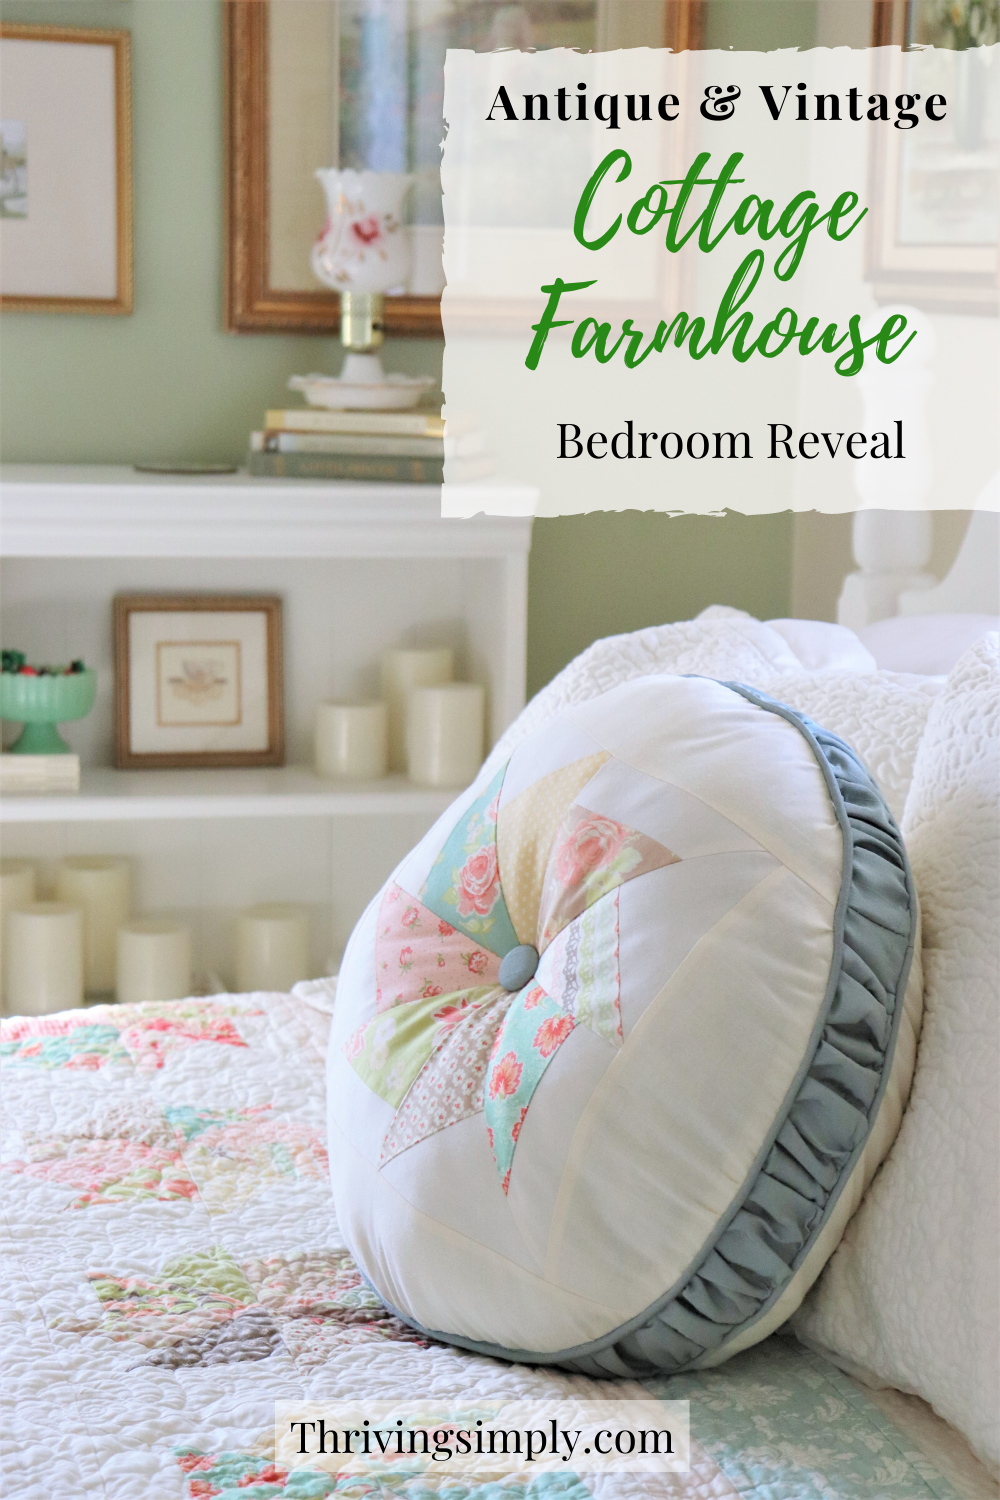 Antique & vintage inspired, get fresh ideas for a cottage farmhouse style bedroom makeover! Includes simple furniture flips & easy, budget friendly DIY projects to create the vintage cottage style you love! #cottagefarmhouse #cottagebedroom #farmhousebedroom #cottagestyle